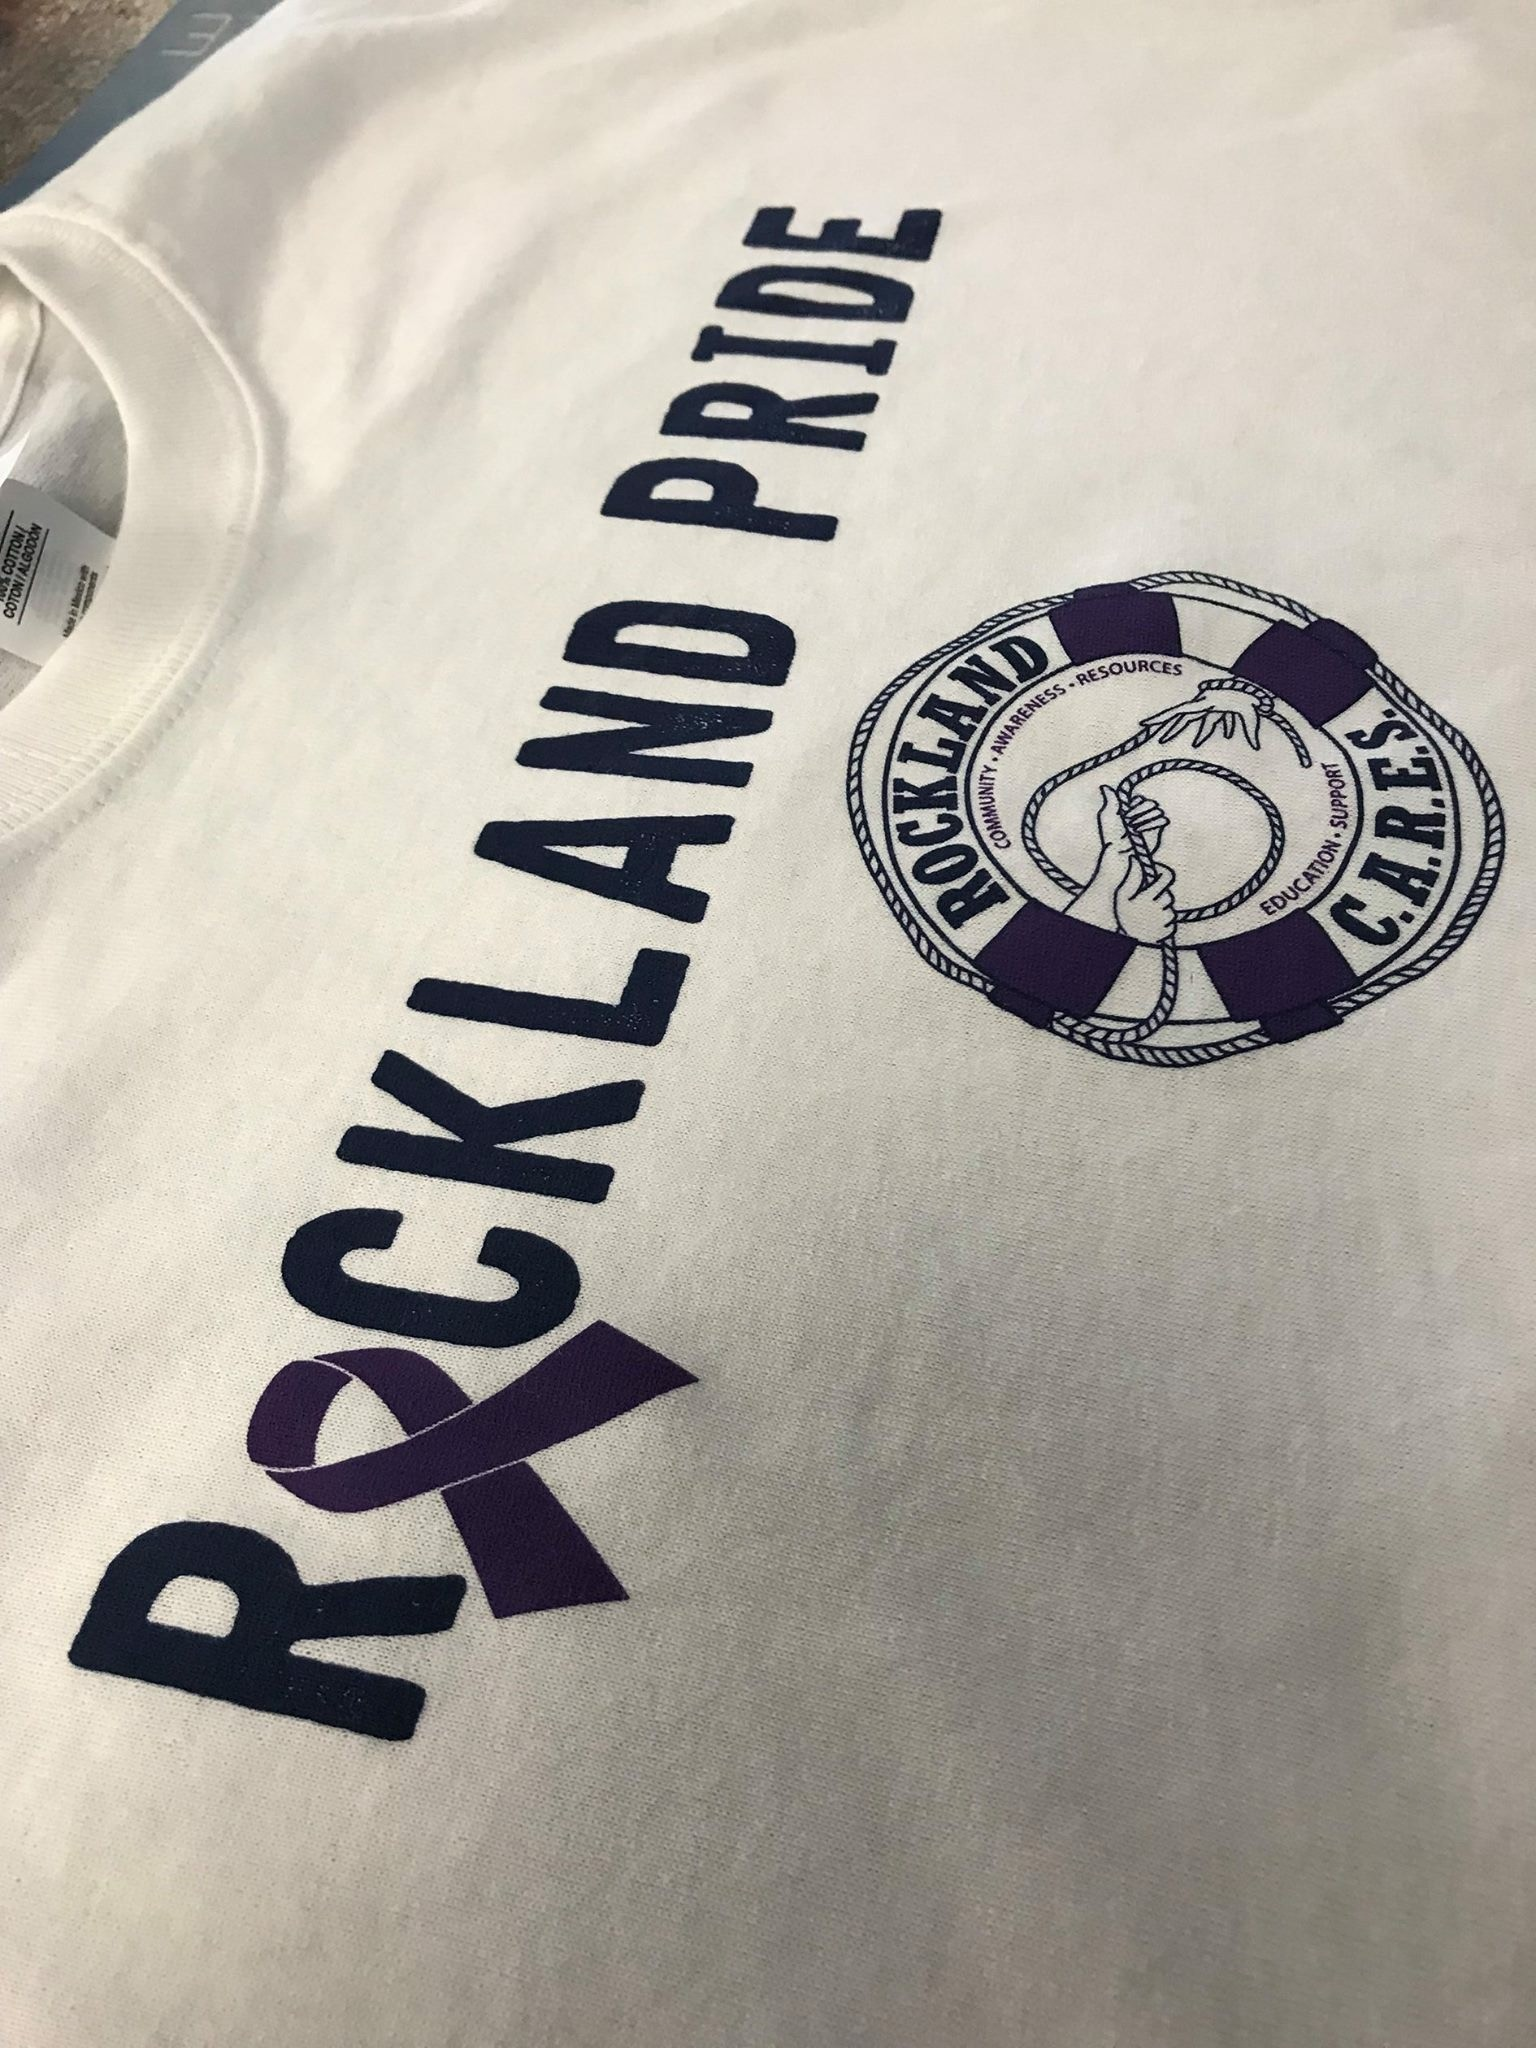 Rockland Pride Tees for Opioid Crisis Awareness